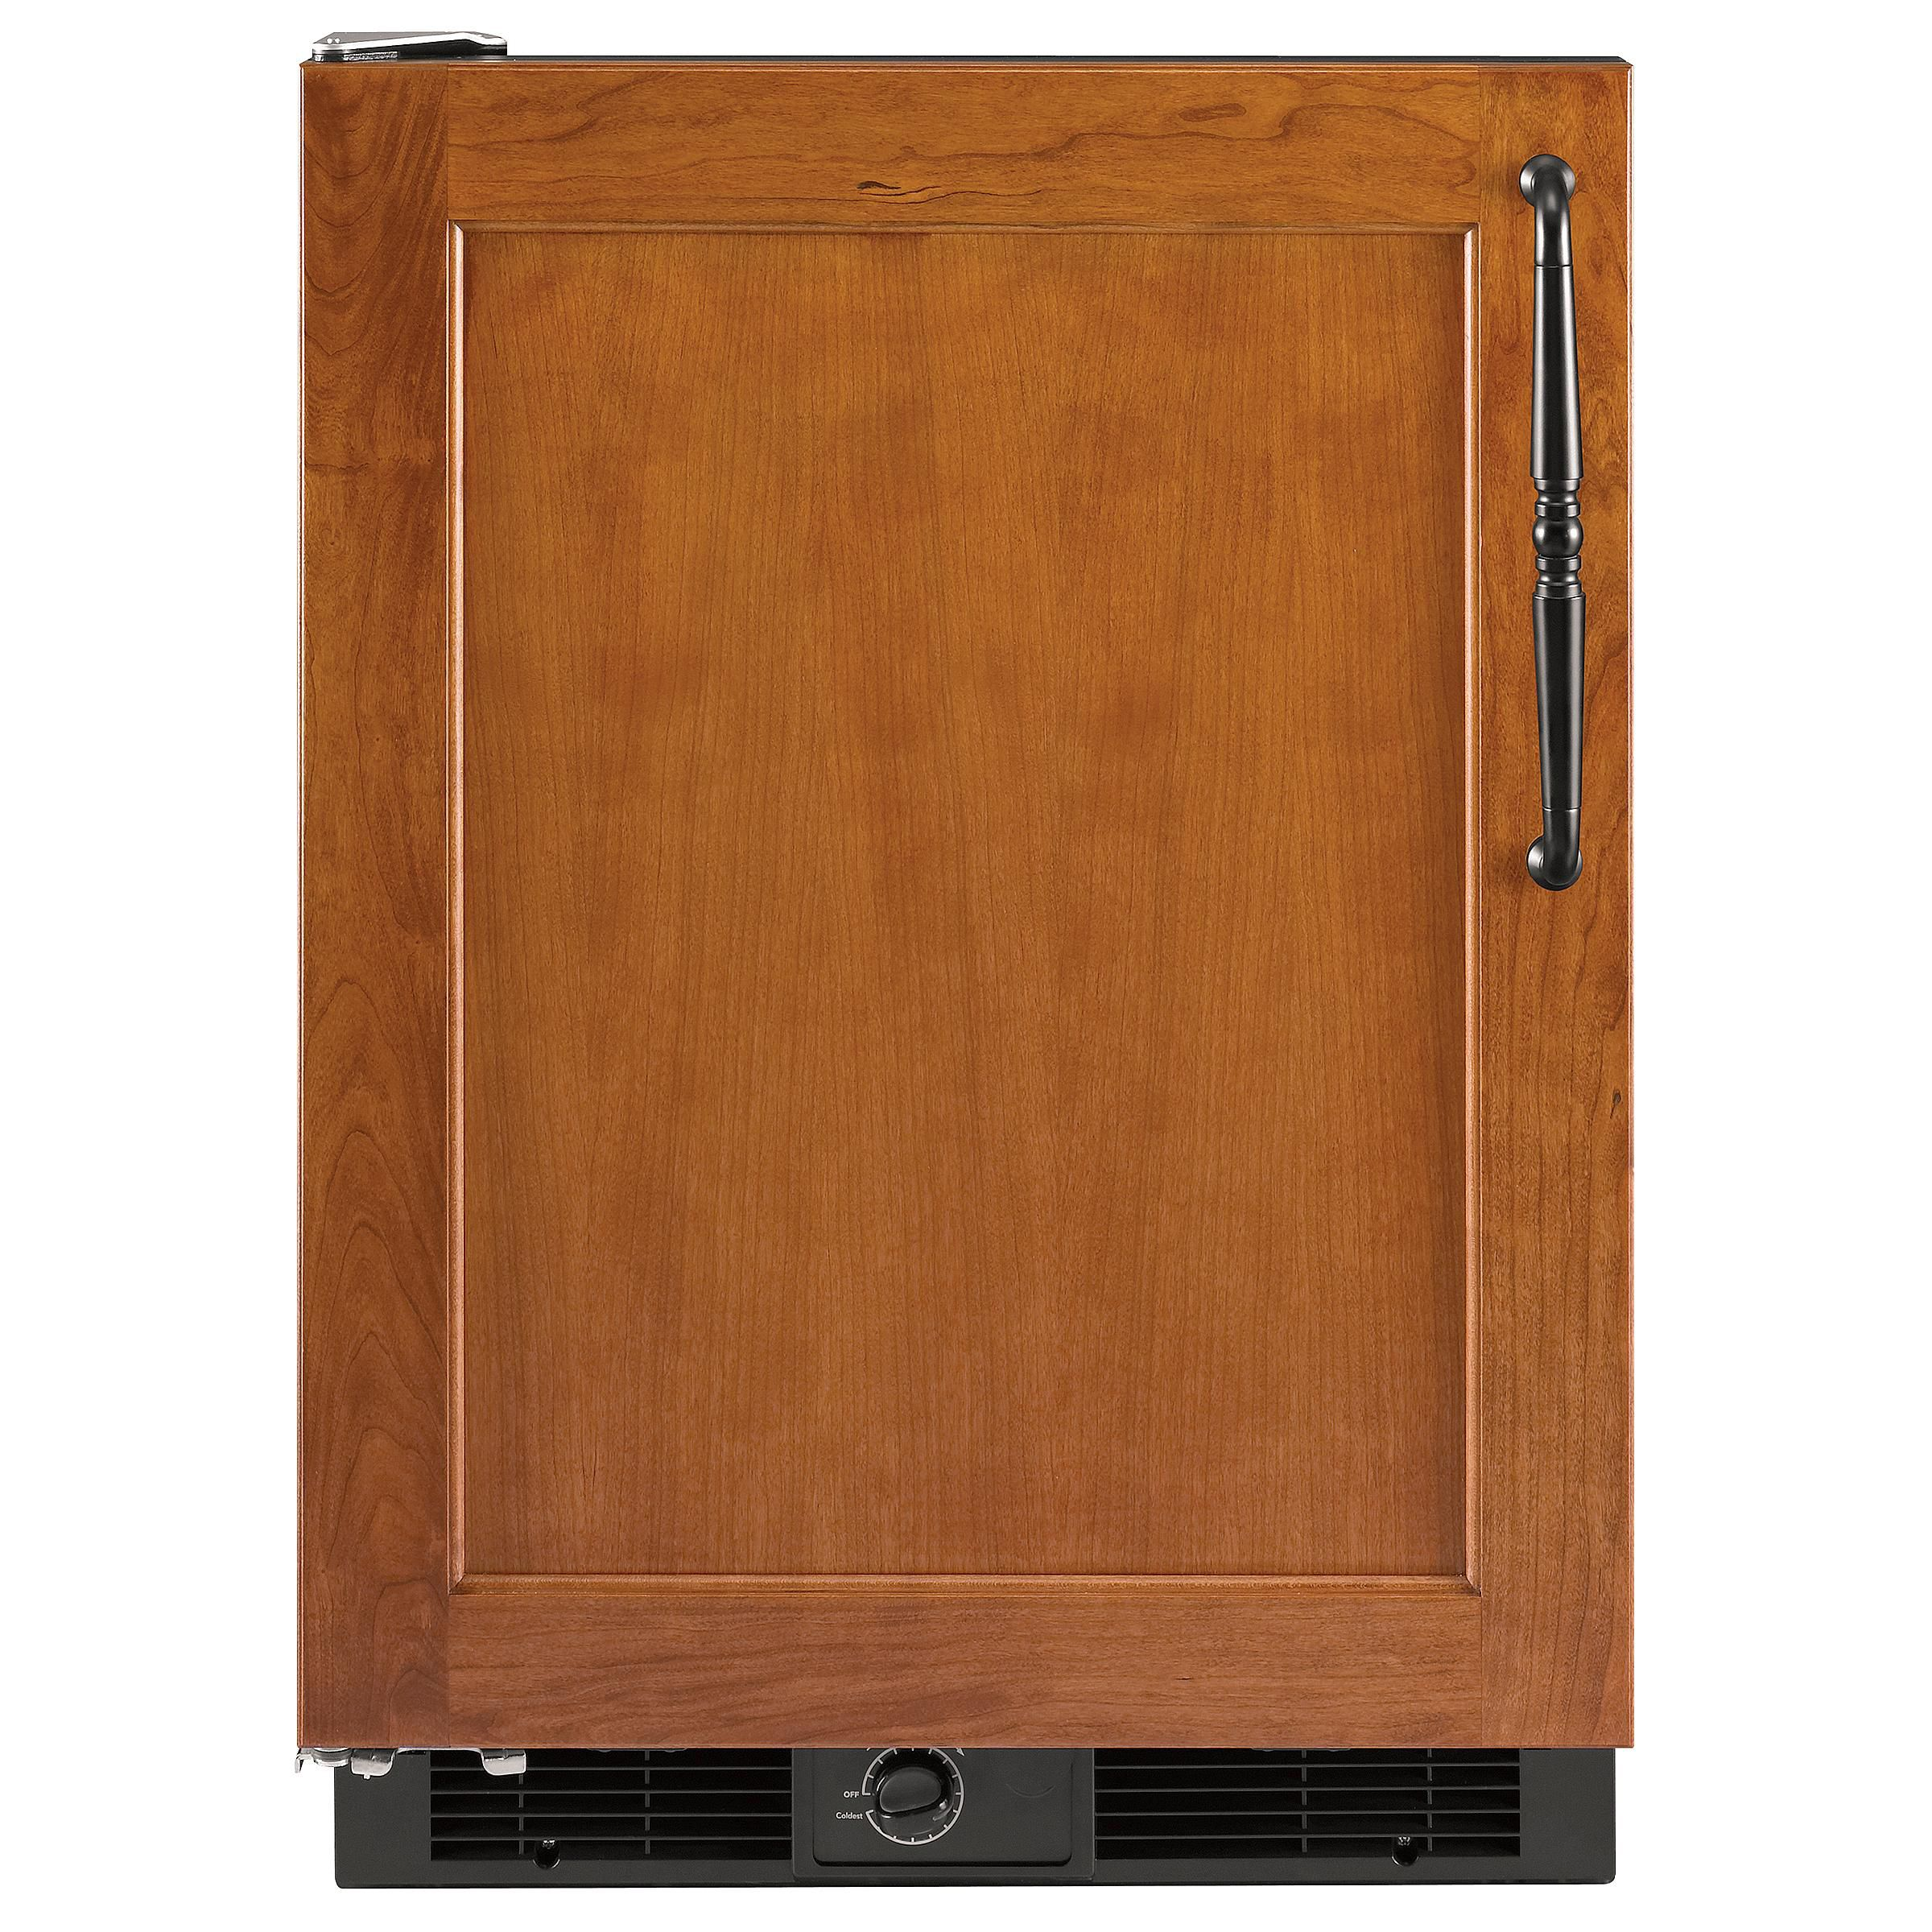 KitchenAid 24 in. Undercounter Refrigerator